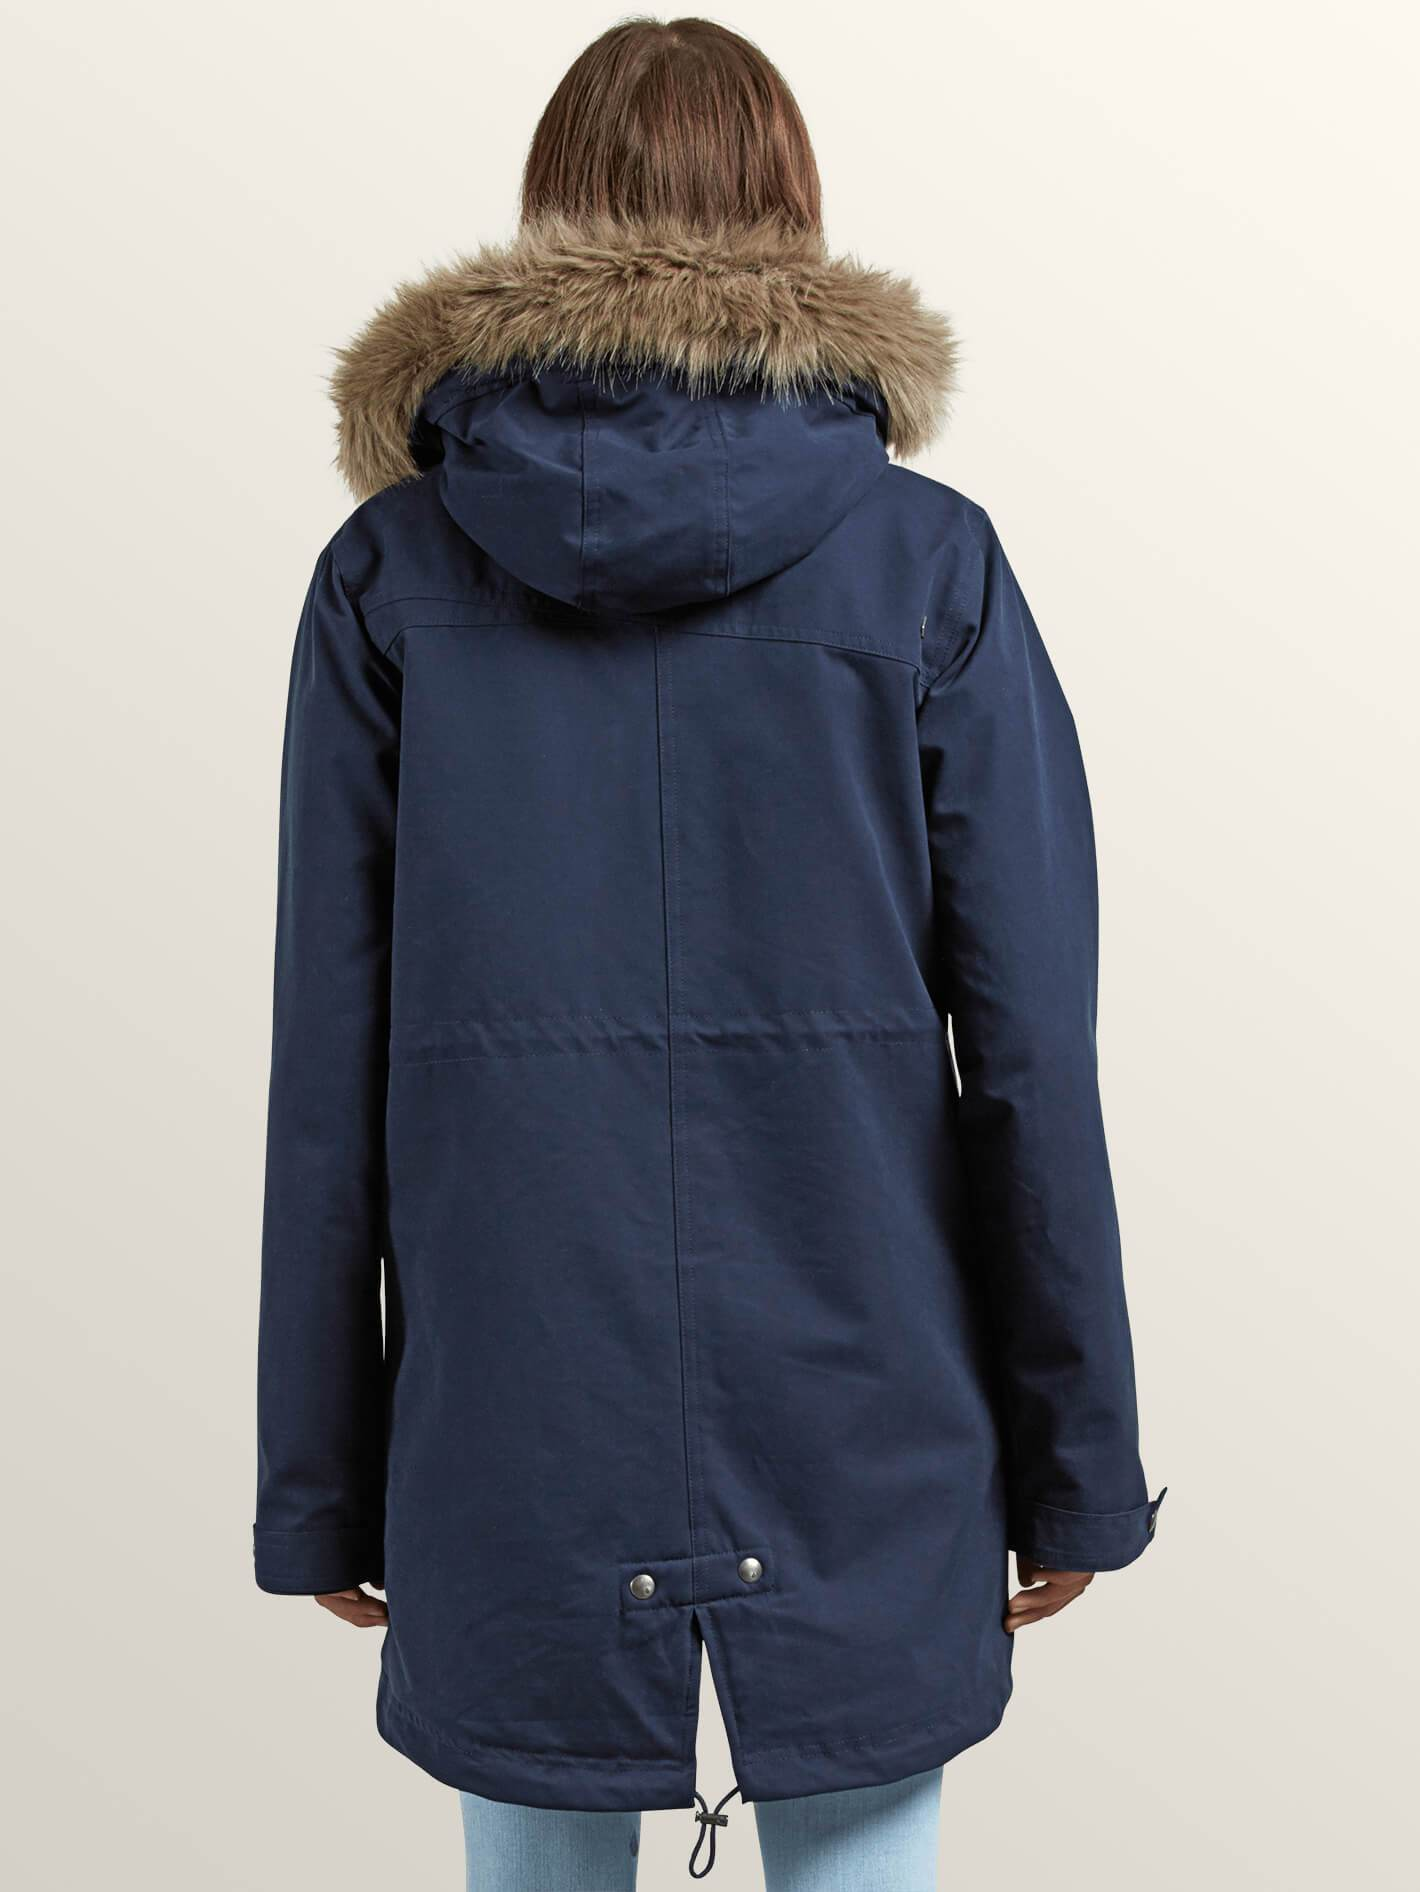 Veste Veste Coat Heather Heather Volcoon Grey Volcoon Coat Grey Volcoon Heather Coat Veste Af1xFq1